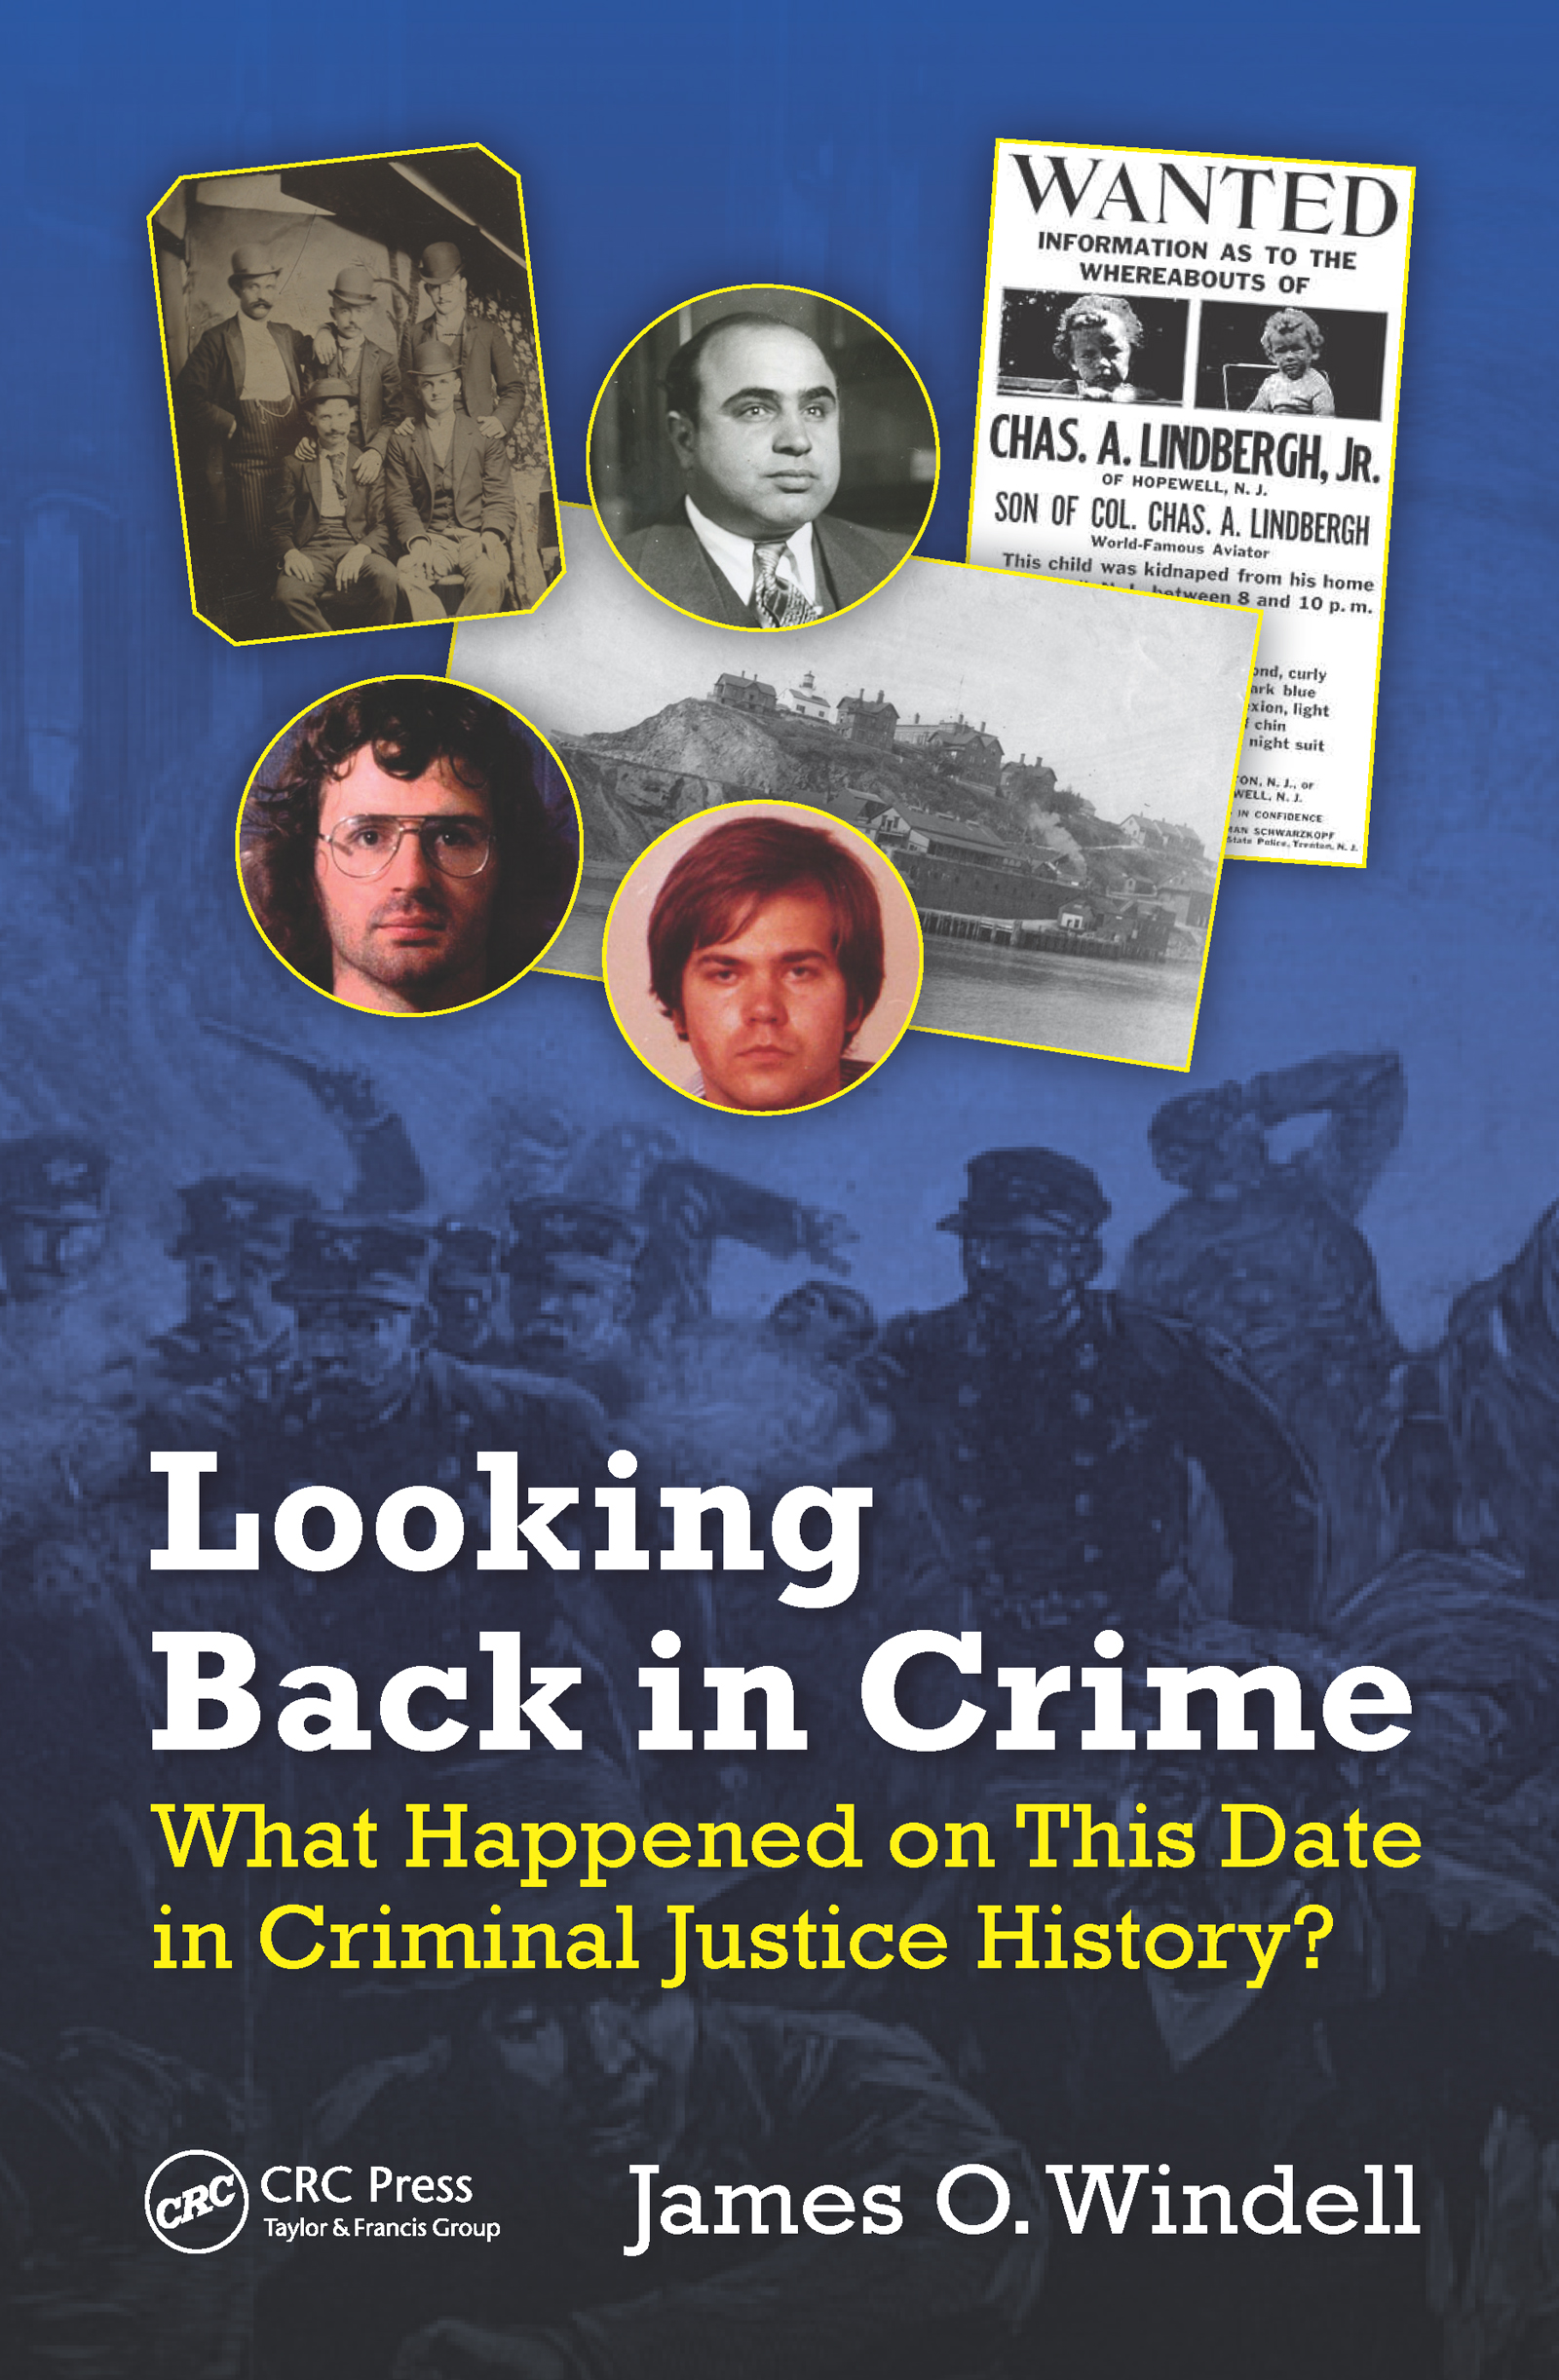 Looking Back in Crime: What Happened on This Date in Criminal Justice History? book cover